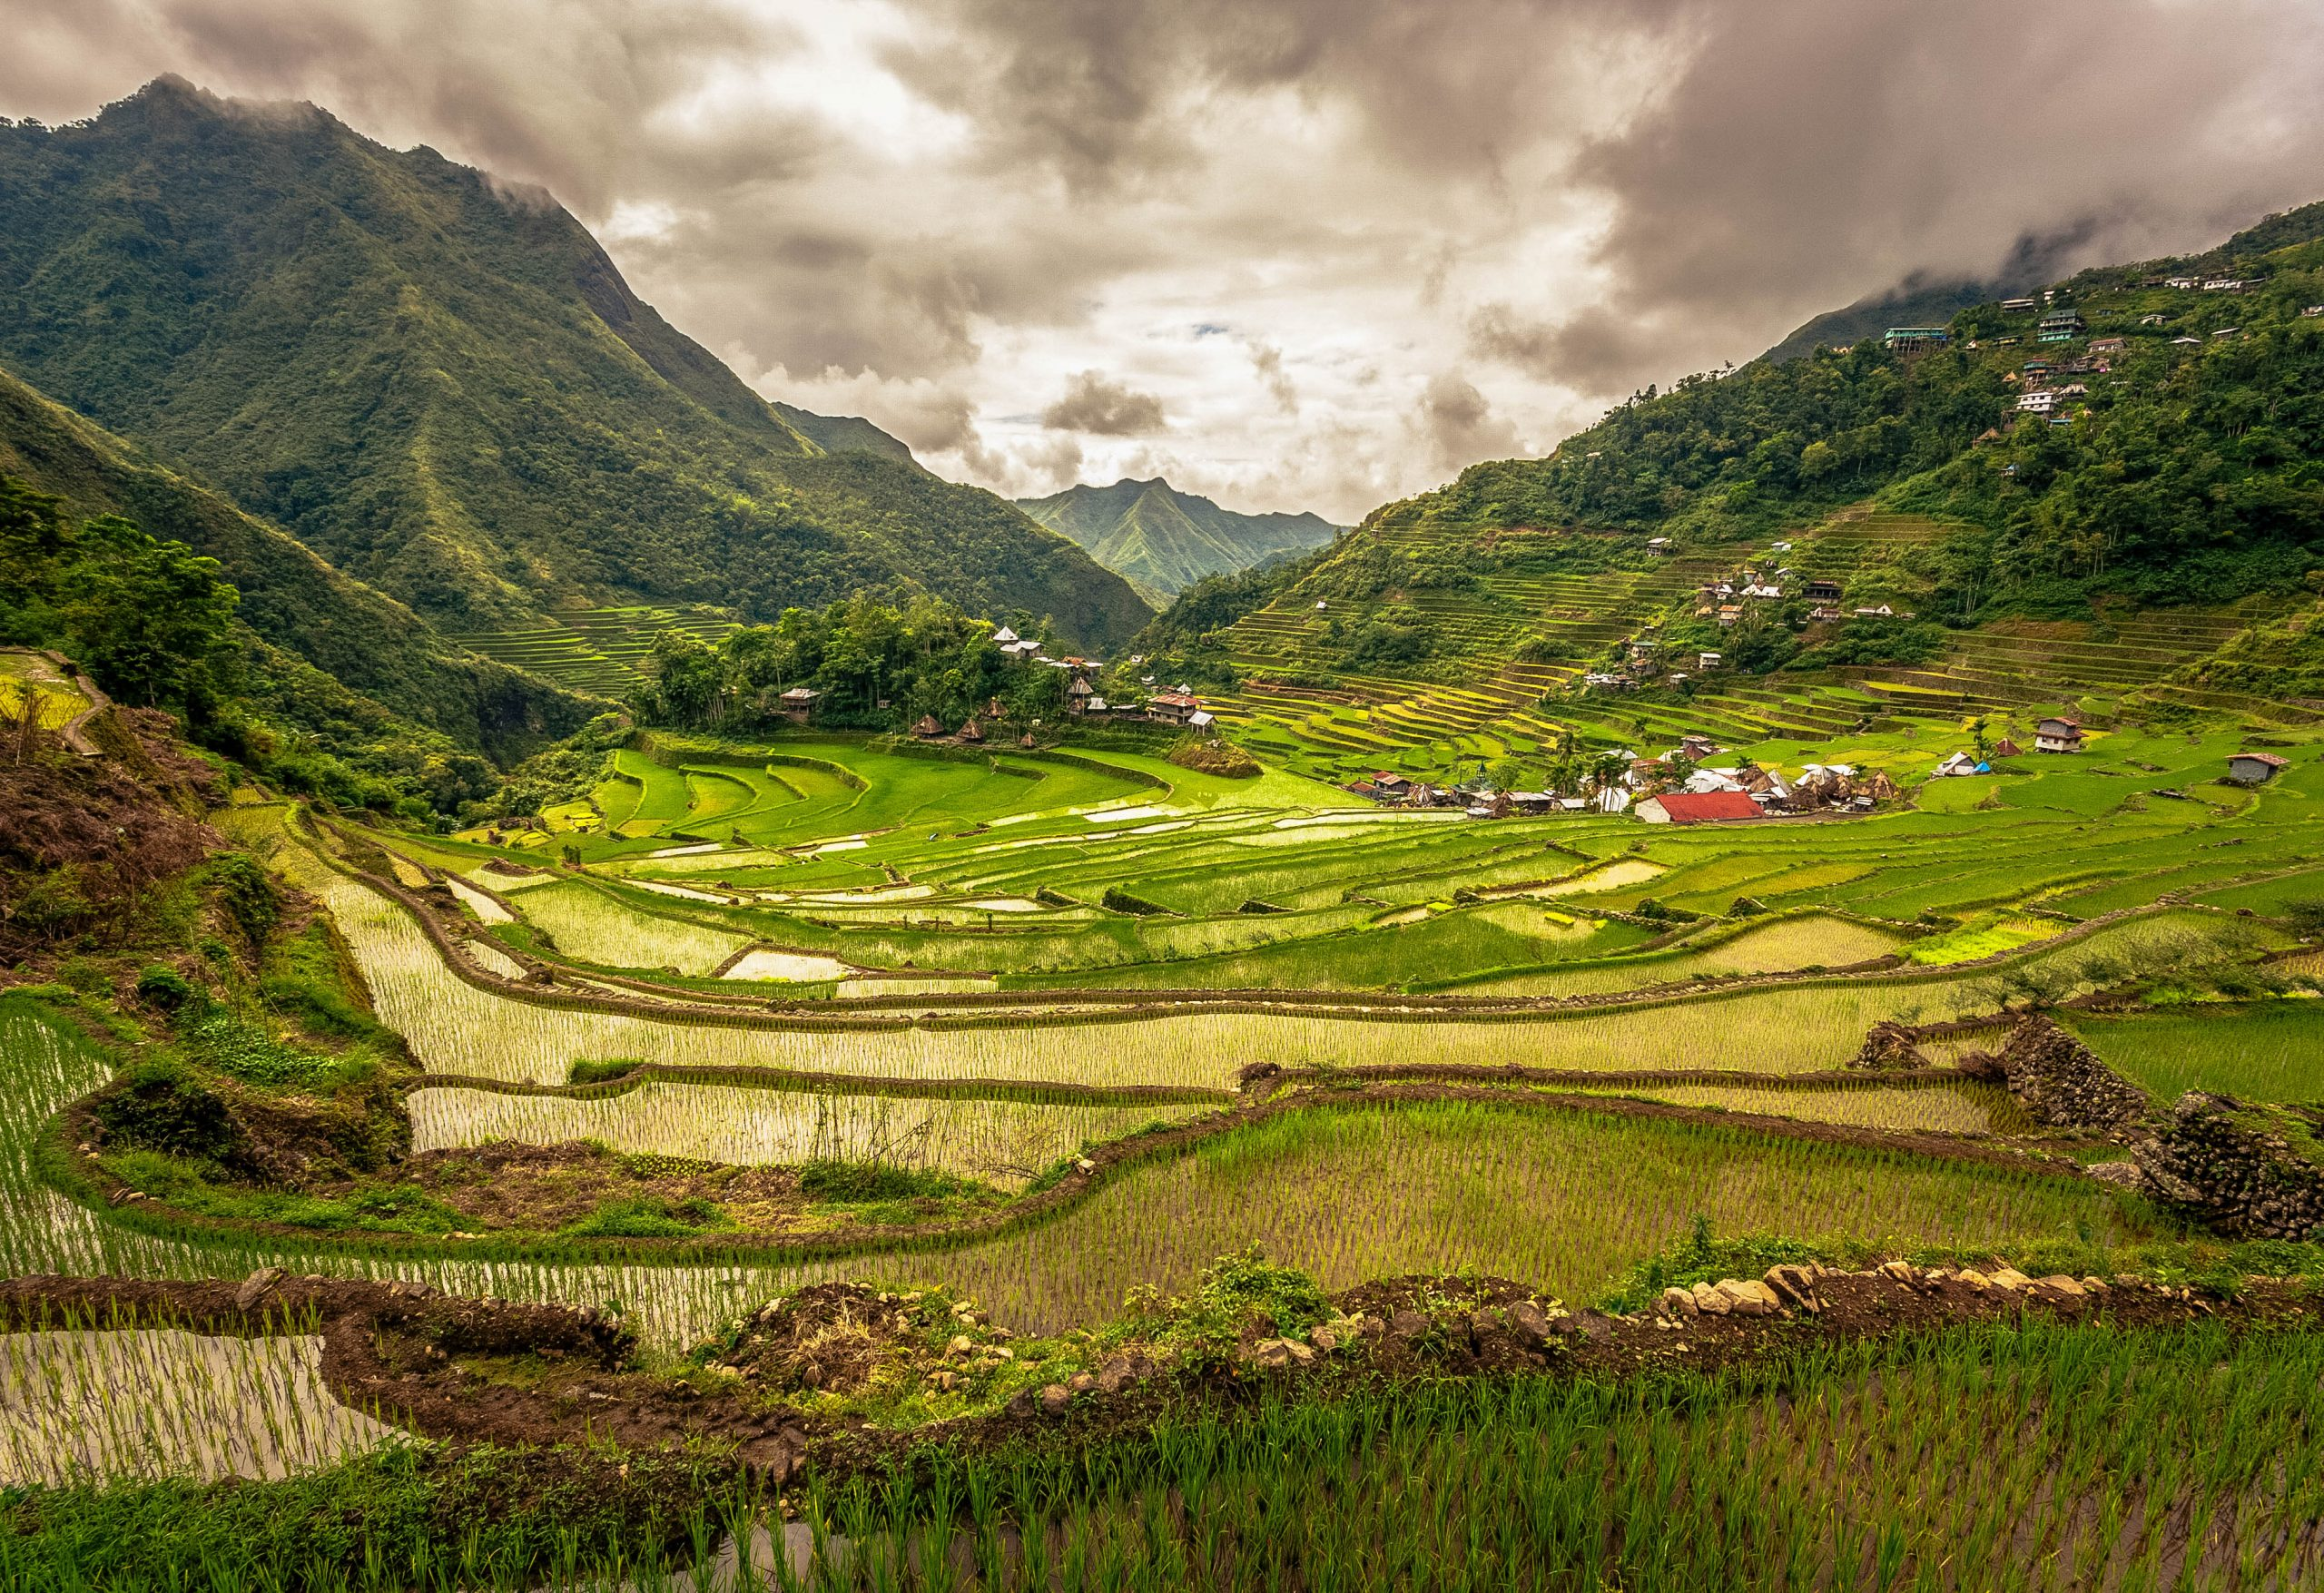 A view of the lofty, green terraced paddy fields carved upon a valley walled by mountains. This is the Batad Rice Terraces, one of the five clusters of rice terraces of Ifugao inscribed as one of the UNESCO World Heritage Sites in the Philippines